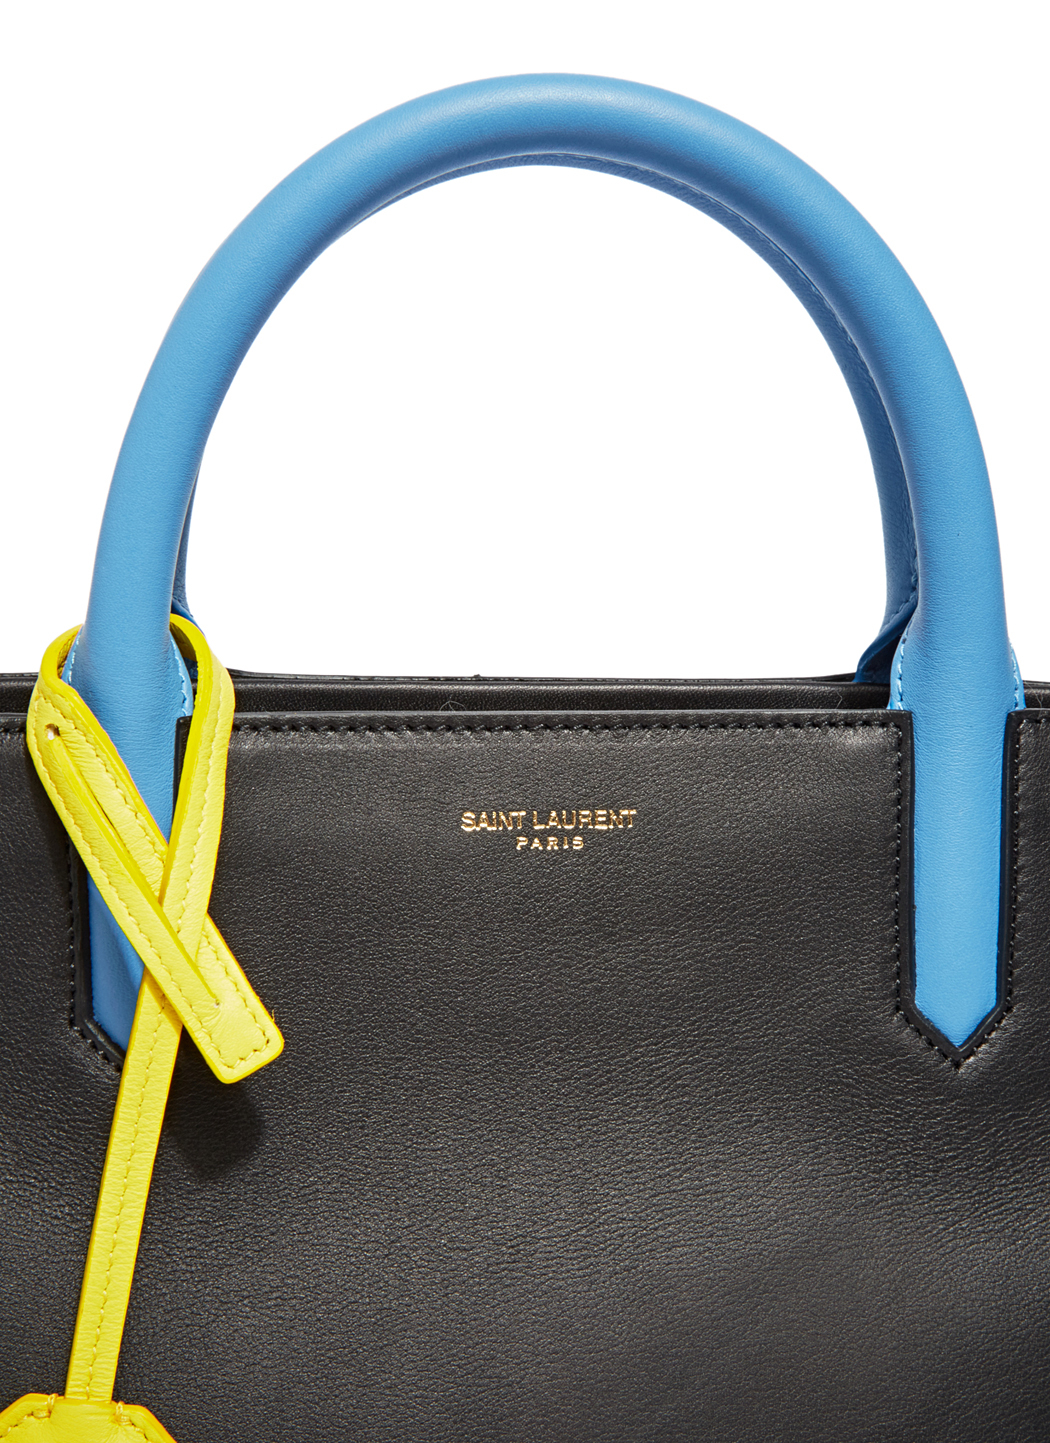 44ac294787 Lyst - Saint Laurent Cabas Rive Gauche Bag in Blue